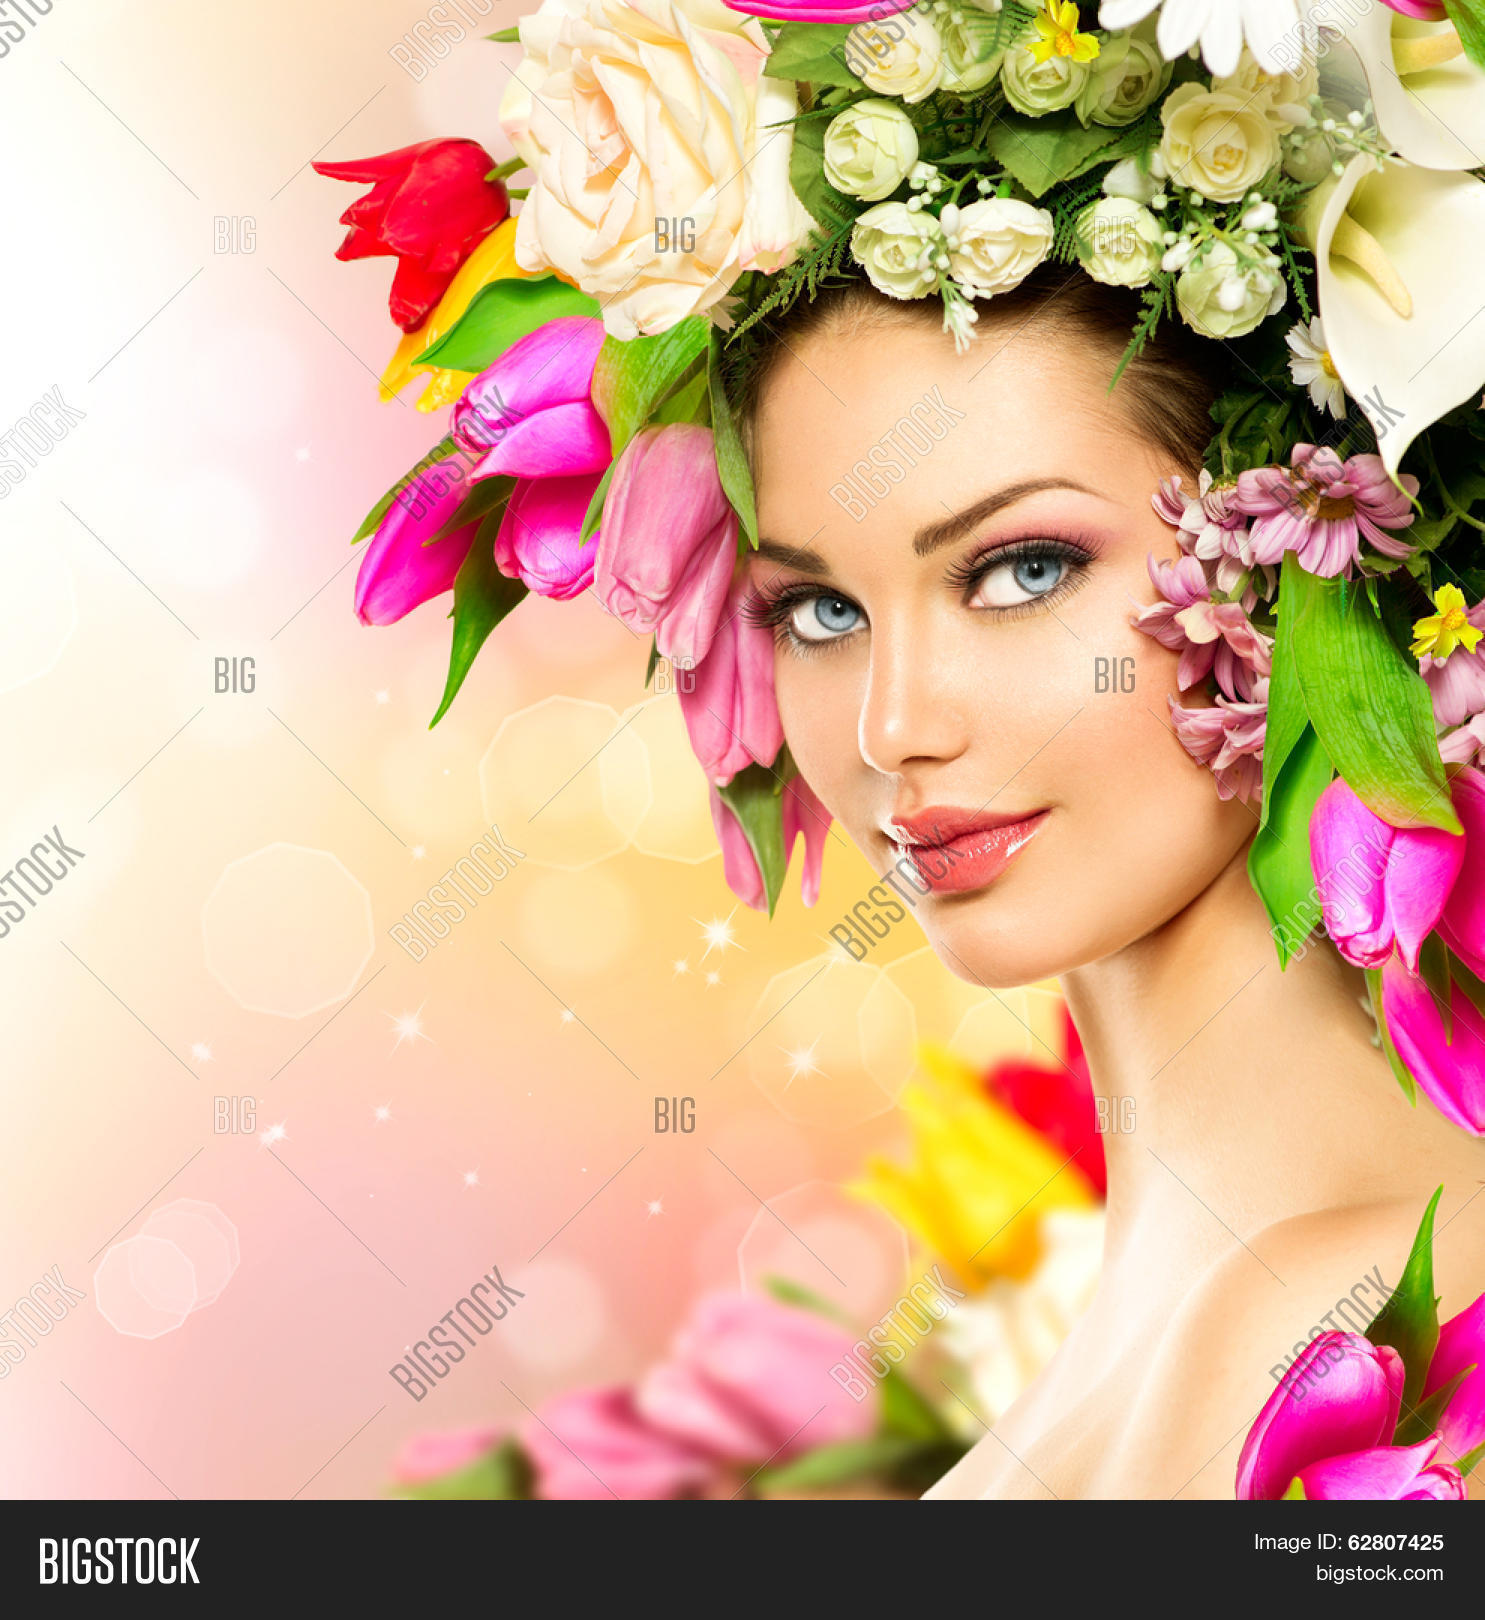 Beautiful lady with flowers flowers healthy spring woman beauty summer model with colorful flowers flowers hair style beautiful izmirmasajfo